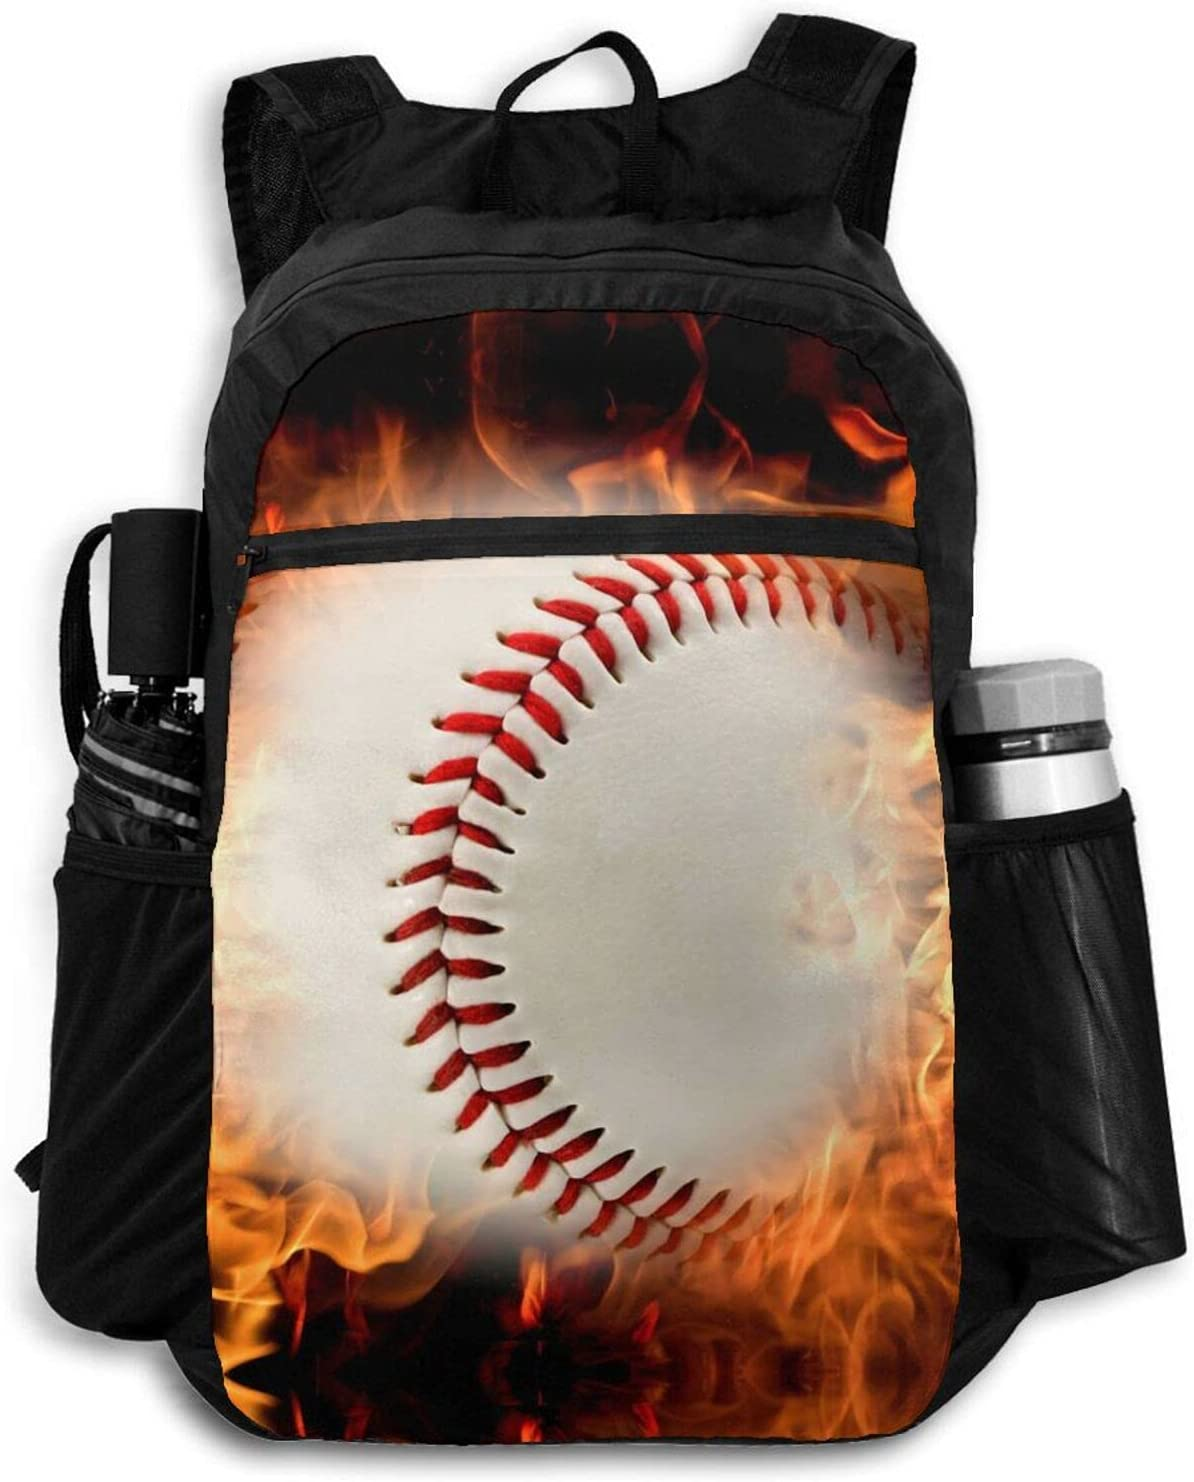 Zolama Baseball on Fire Backpacks for Limited time online shopping trial price Da Cute Men Packable Women